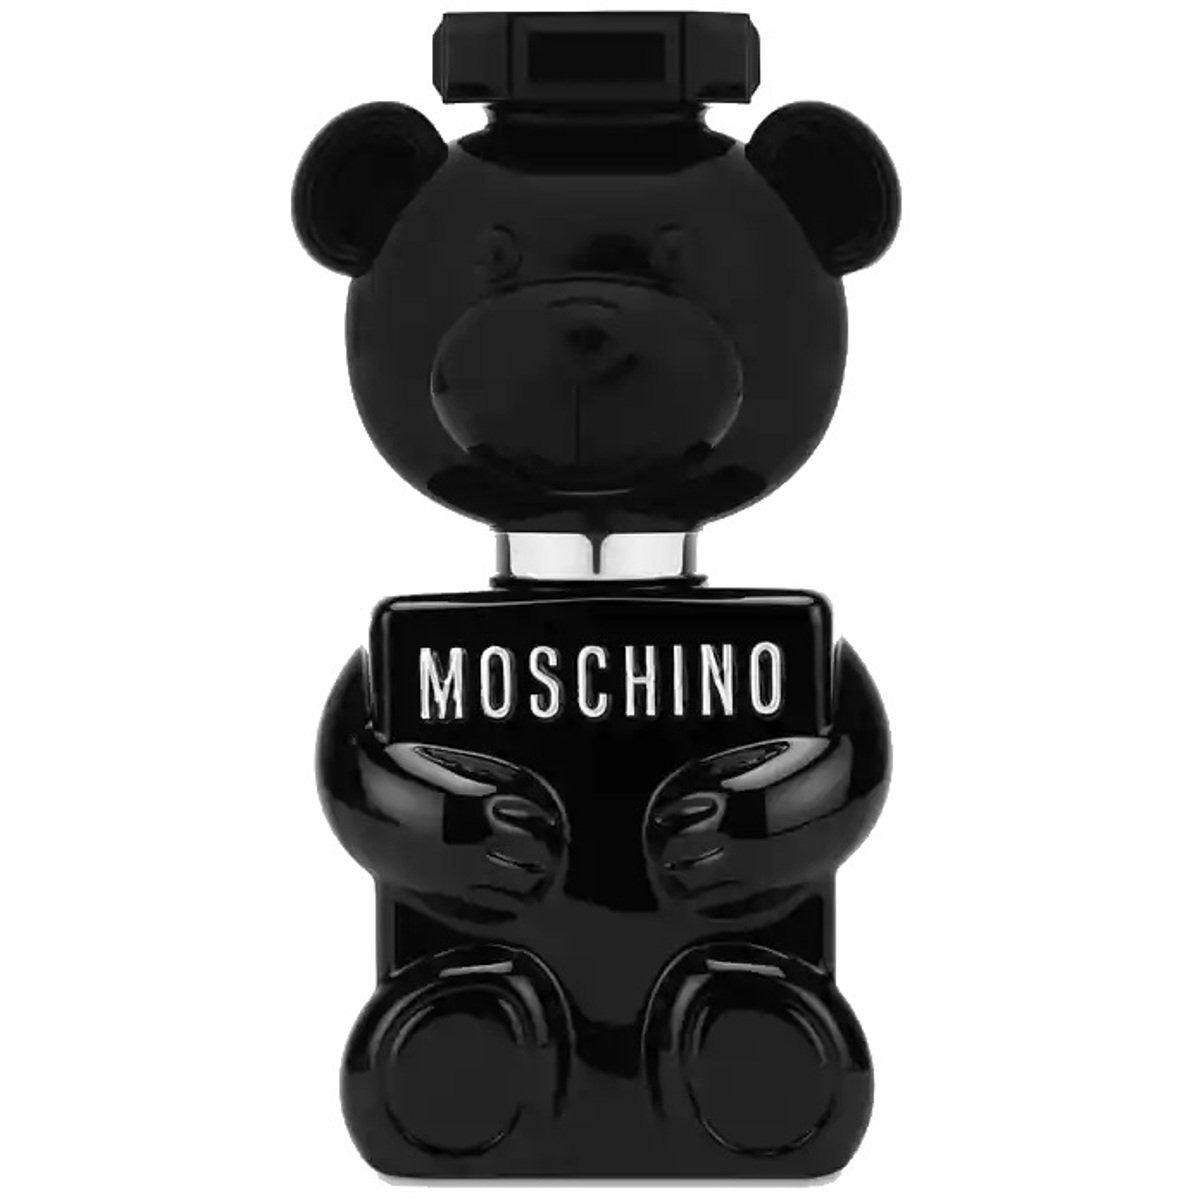 Moschino Toy Boy by Moschino cologne EDP 3.3 / 3.4 oz New Tester